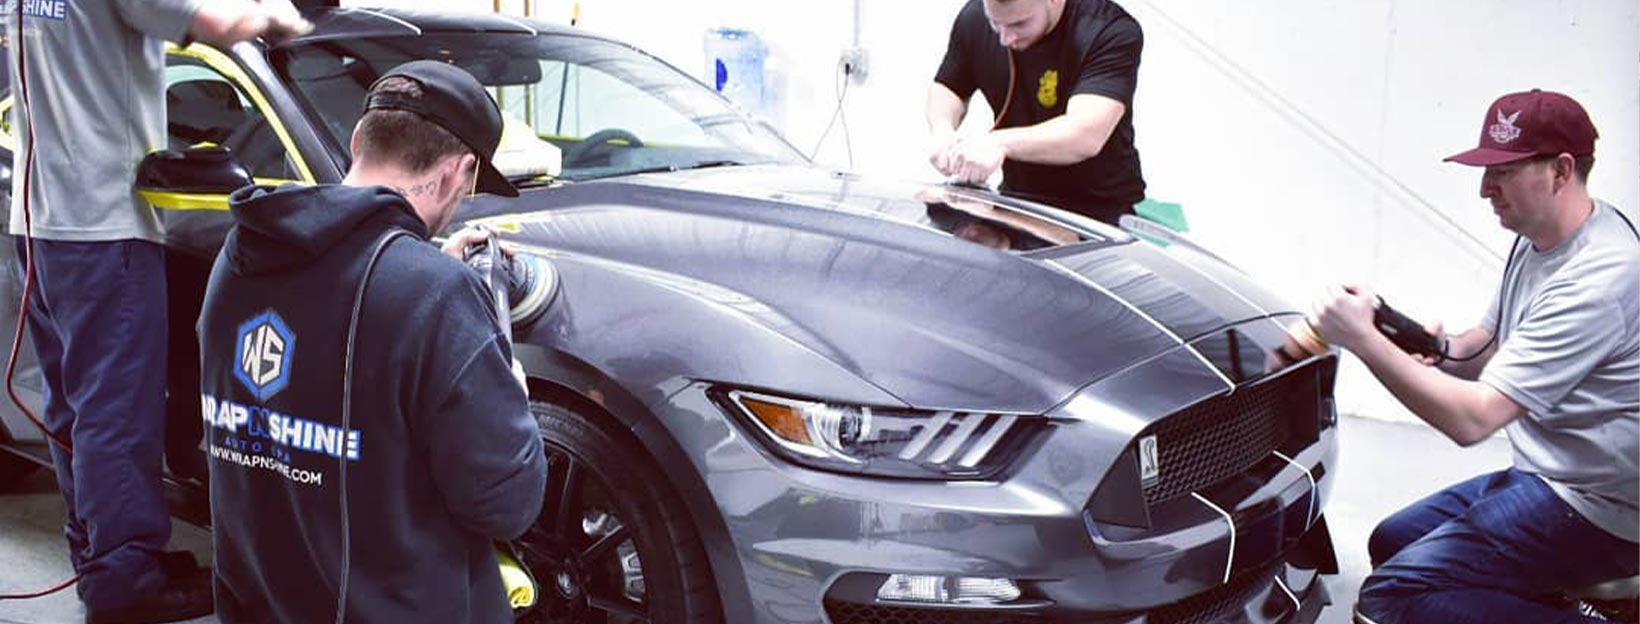 Wrap N Shine team paint correcting a Mustang GT